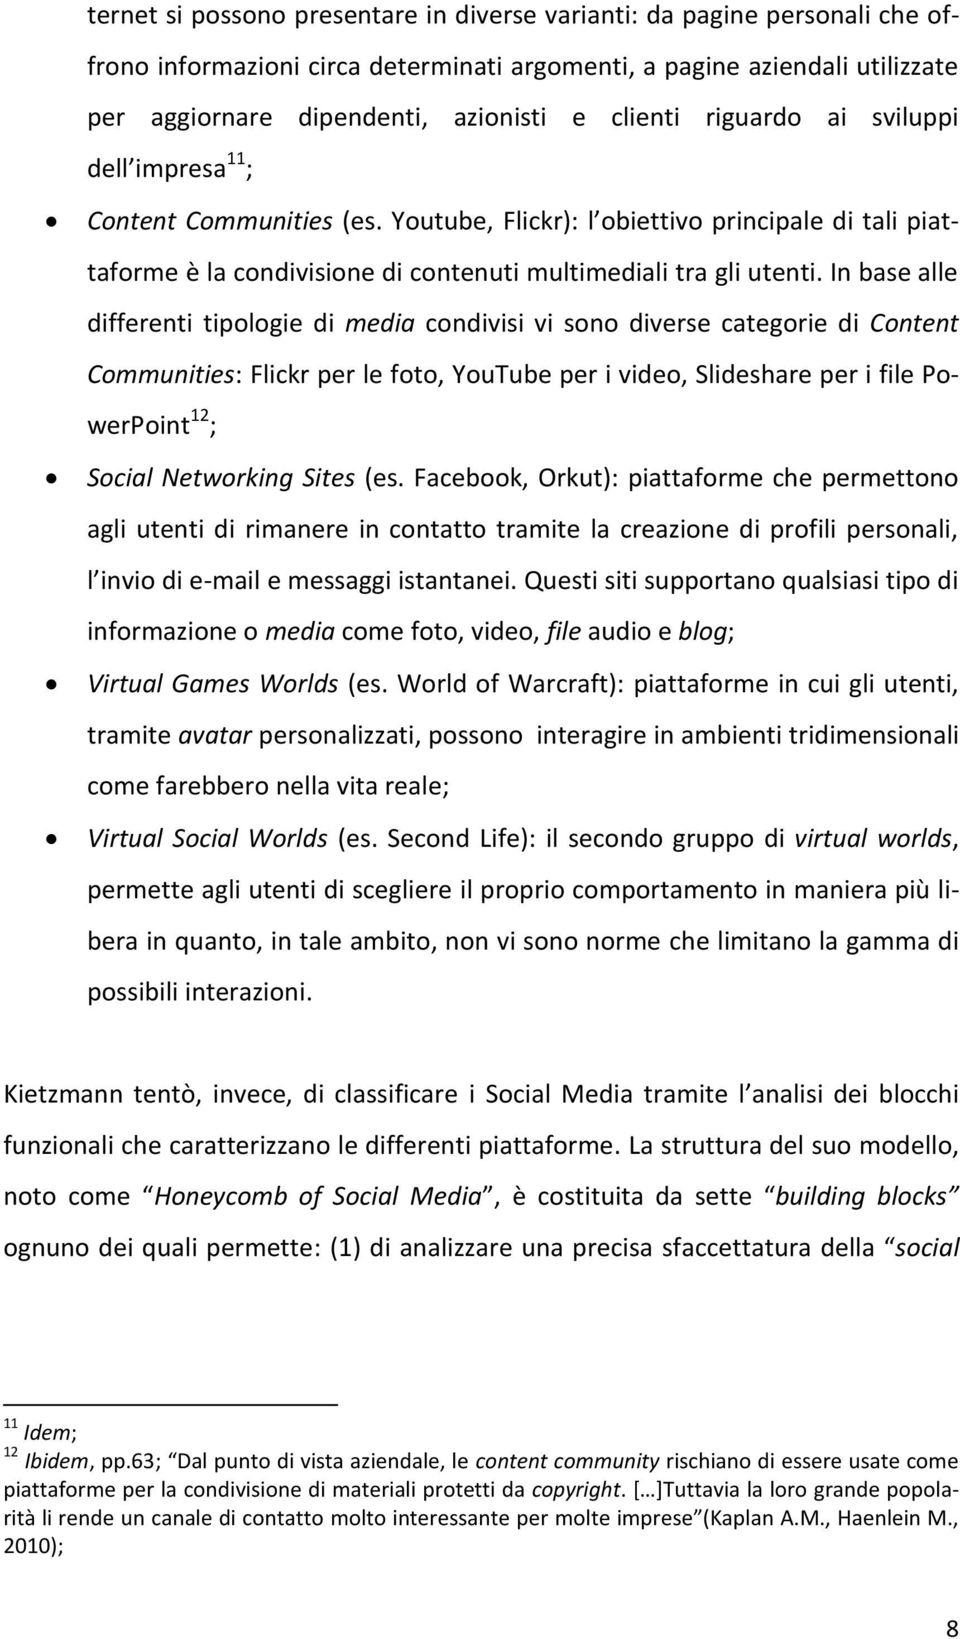 In base alle differenti tipologie di media condivisi vi sono diverse categorie di Content Communities: Flickr per le foto, YouTube per i video, Slideshare per i file PowerPoint 12 ; Social Networking